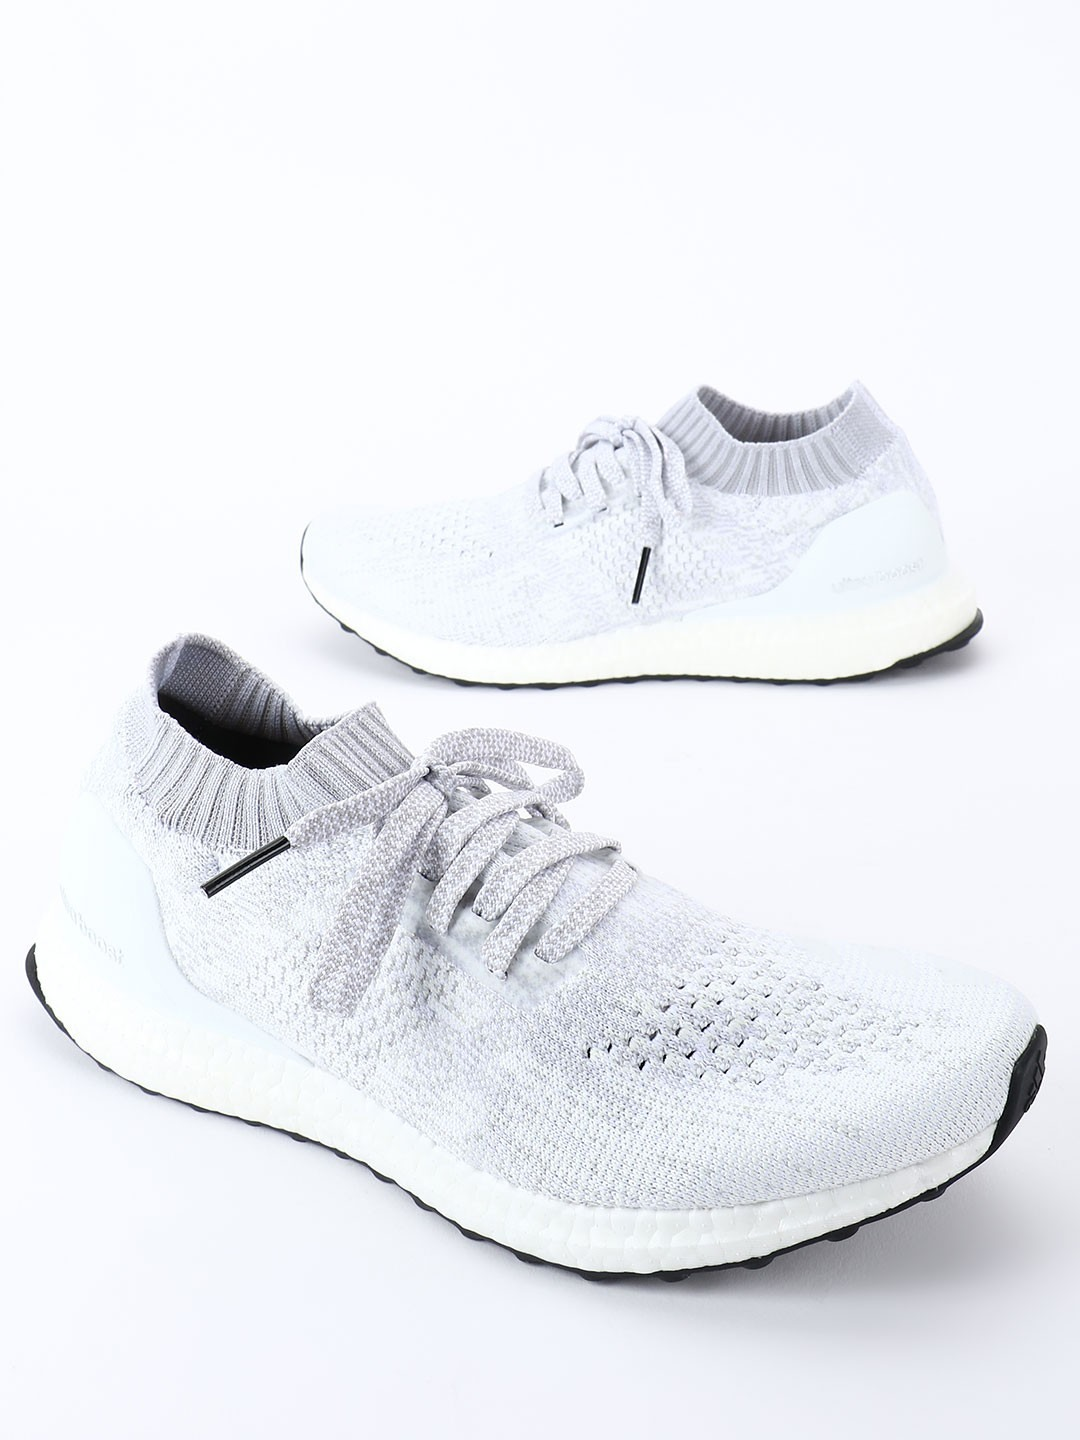 Adidas Multi Ultraboost Uncaged Shoes 1